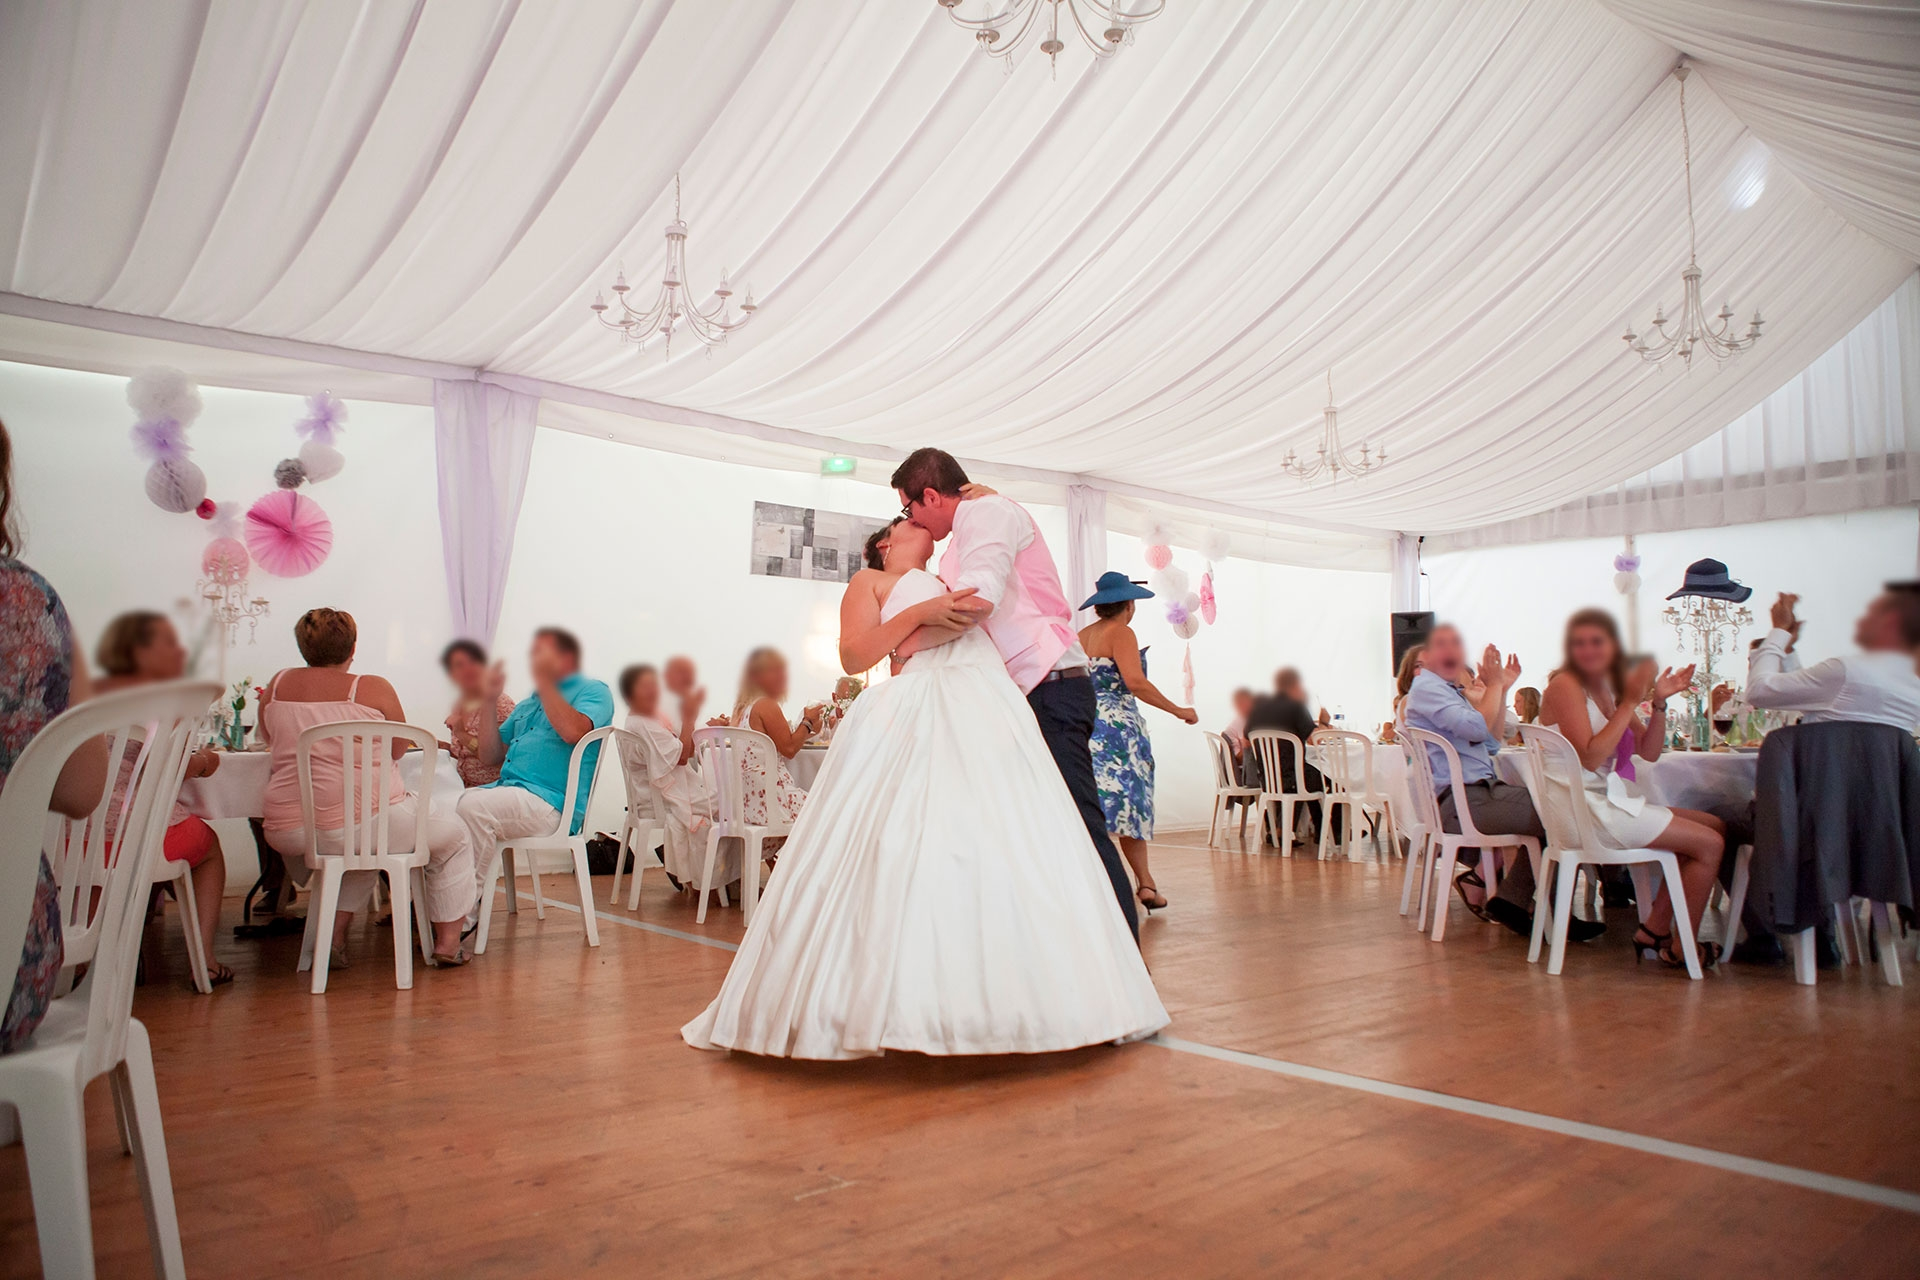 particuliers-evenements-mariages-oui-france&philippe-75